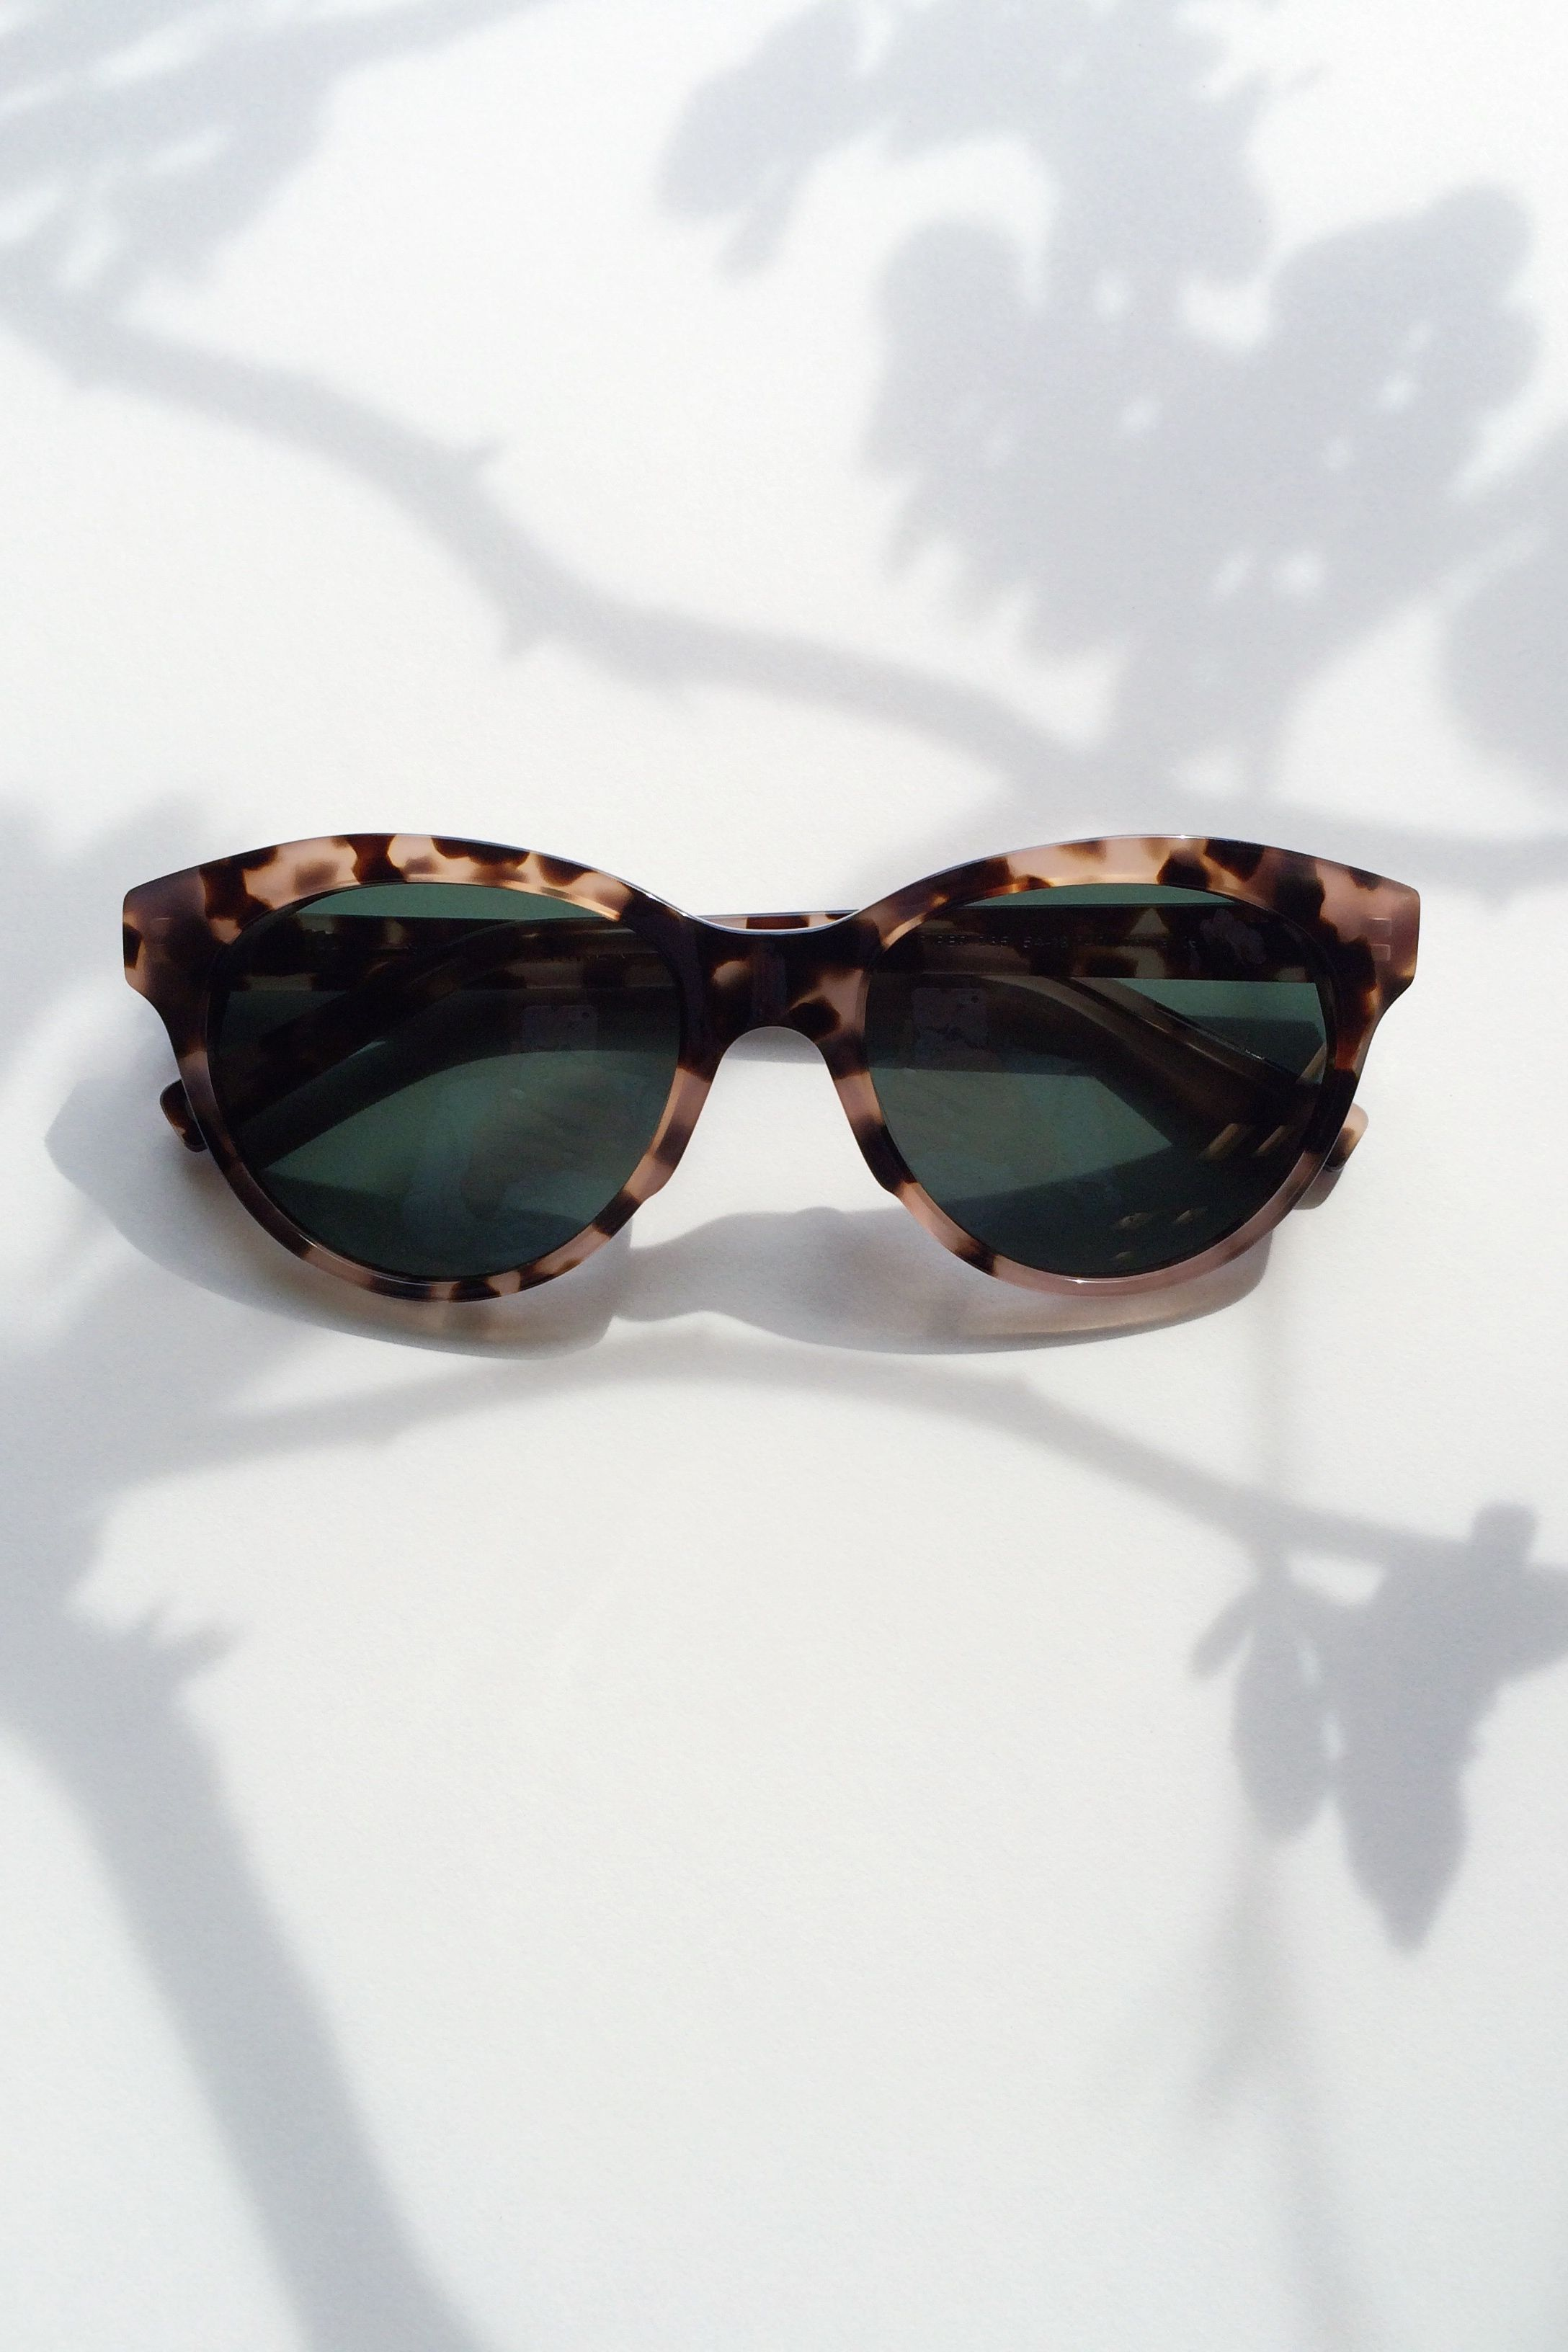 1a68504170b Piper sunglasses in Petal Tortoise  http   warby.me KTvMO Ray